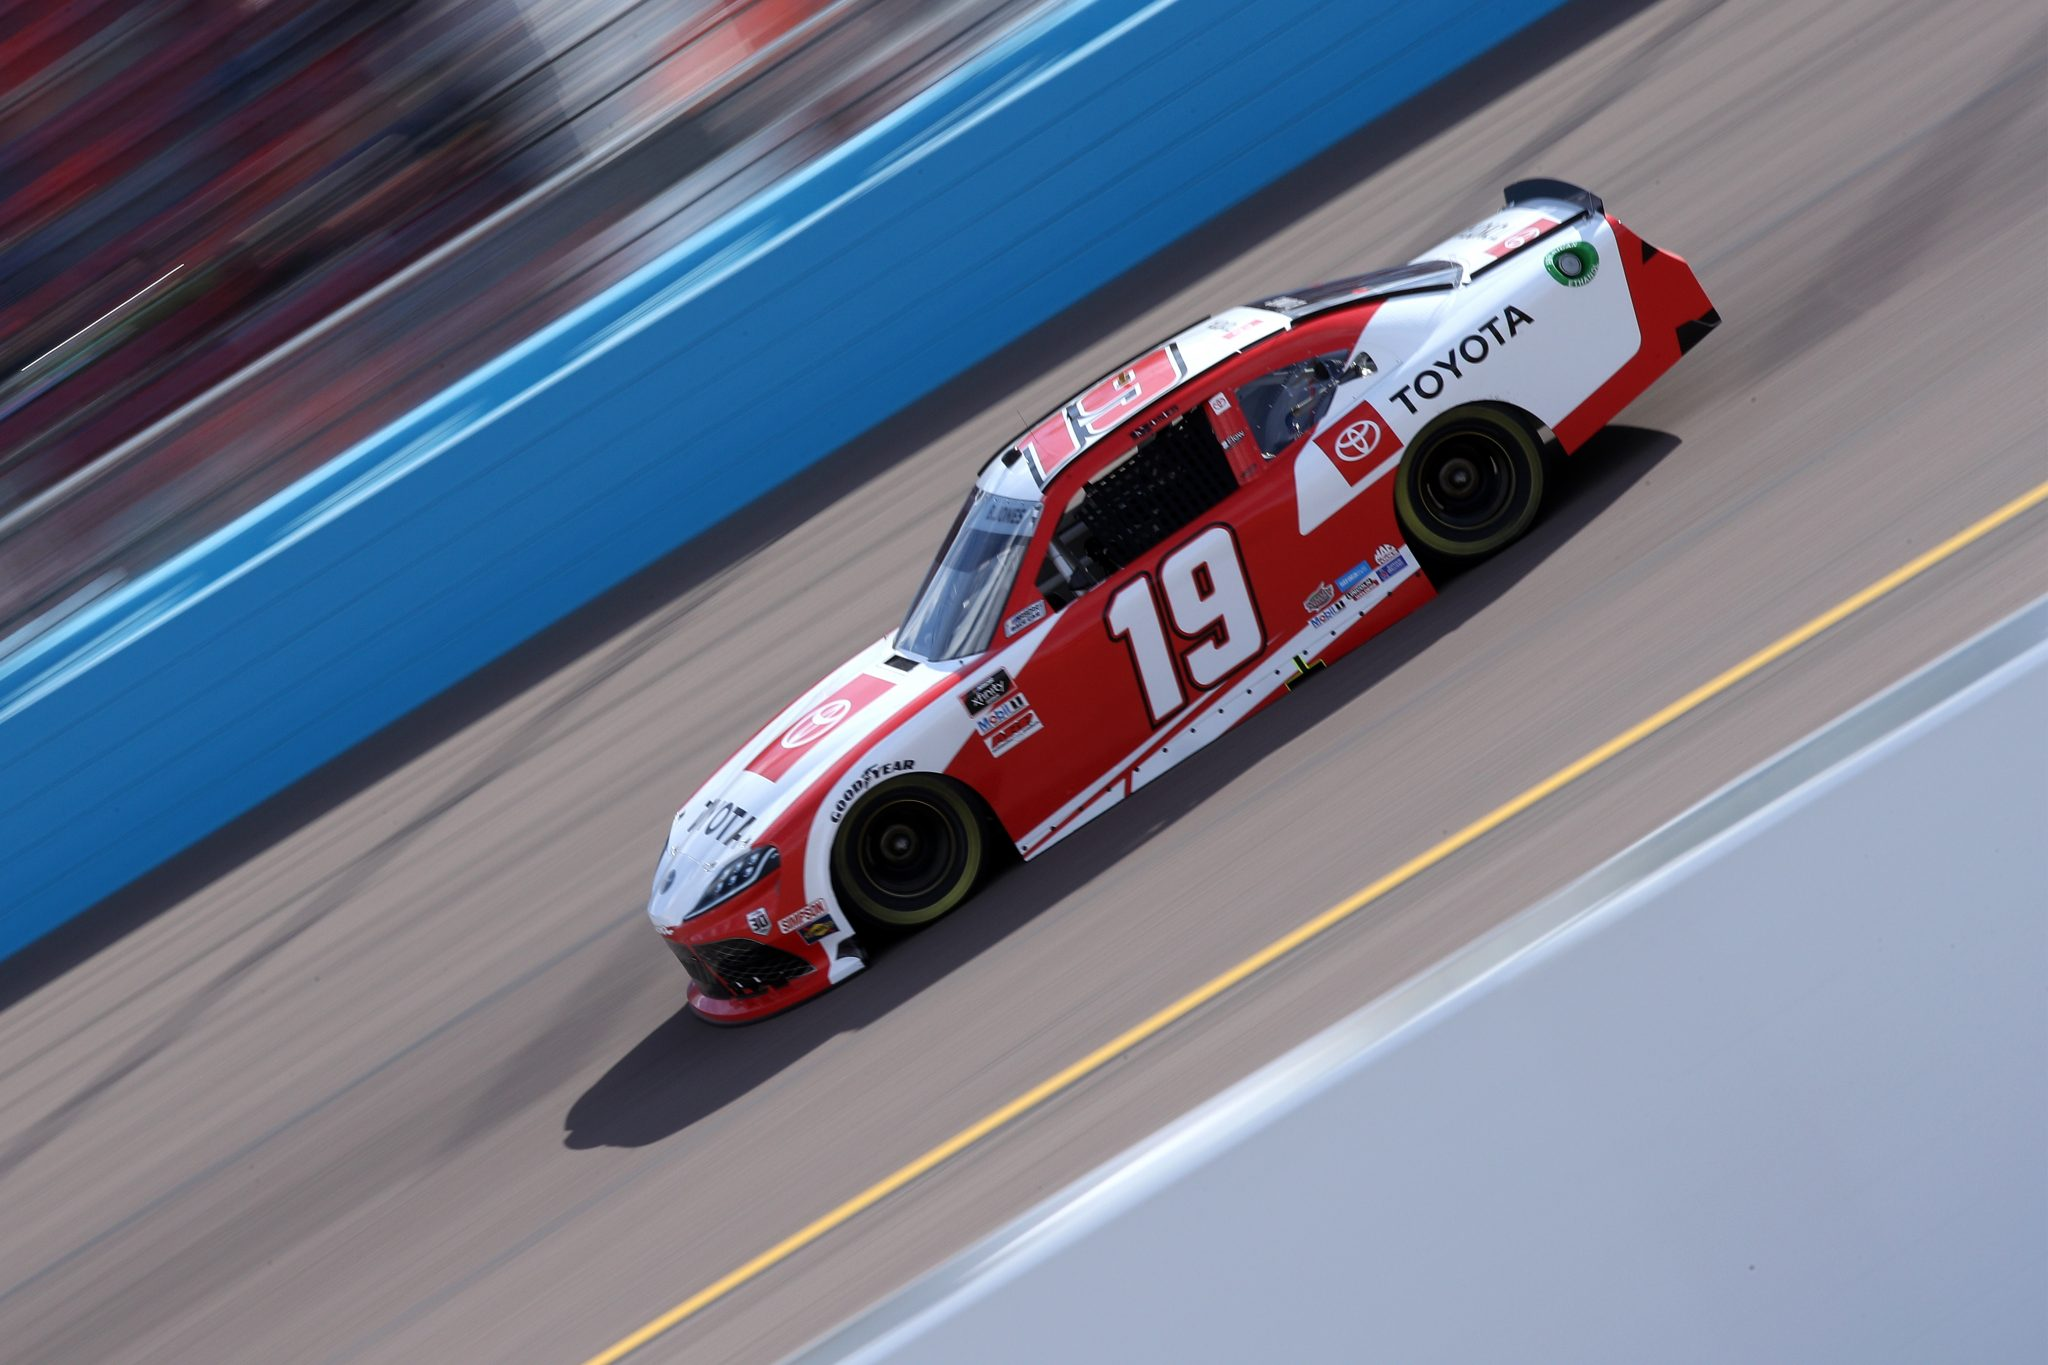 AVONDALE, ARIZONA - MARCH 13: Brandon Jones, driver of the #19 Toyota Toyota, drives during the NASCAR Xfinity Series Call 811 Before You Dig 200 presented by Arizona 811 at Phoenix Raceway on March 13, 2021 in Avondale, Arizona. (Photo by Sean Gardner/Getty Images) | Getty Images